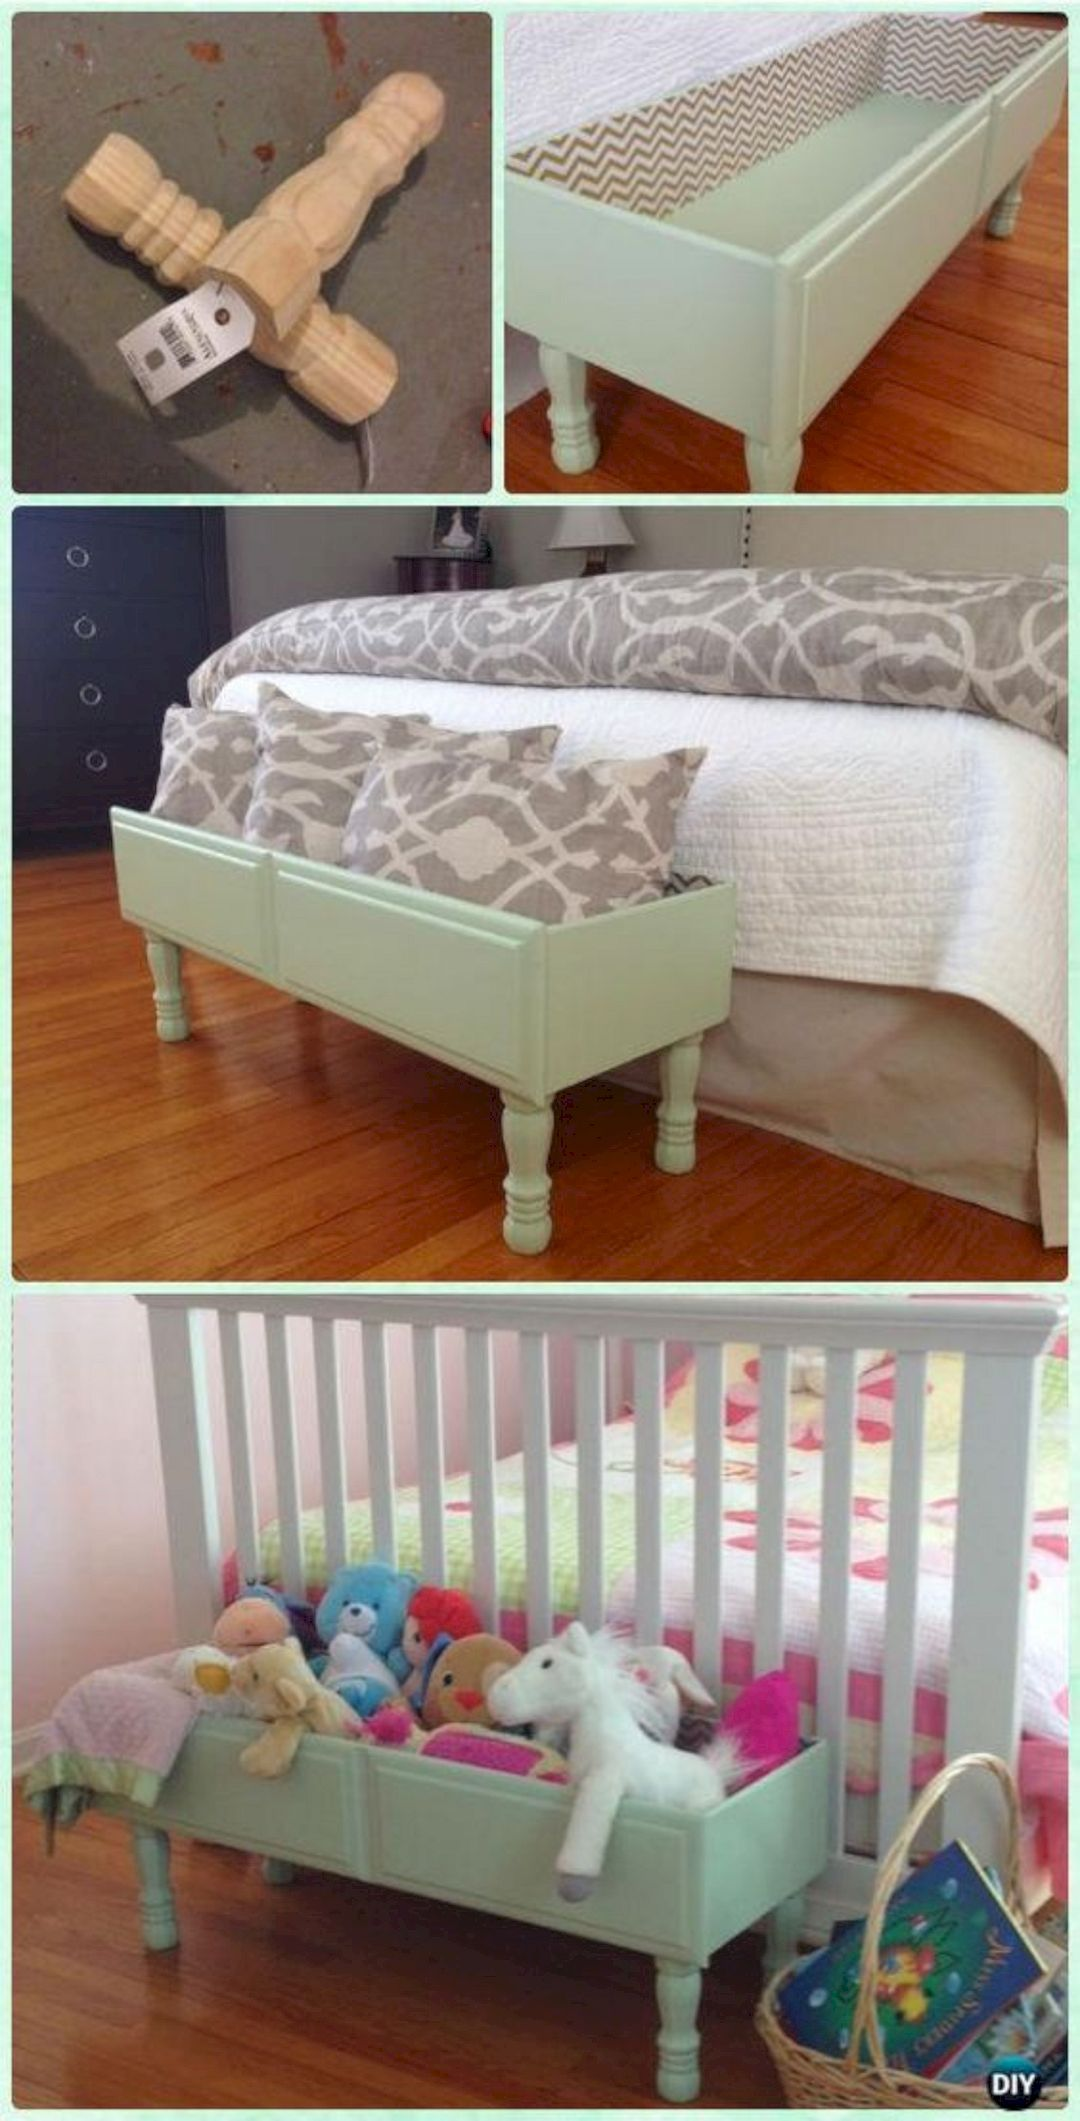 15 Outstanding DIY Repurposed Furniture Ideas